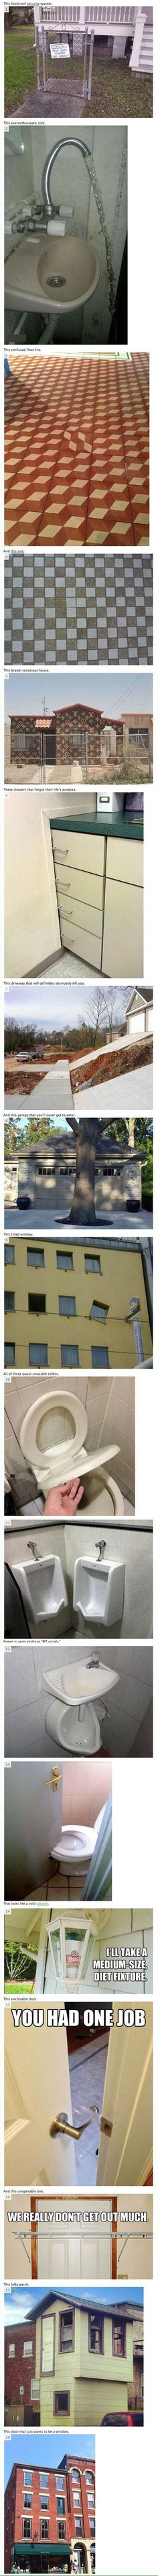 You Had One Job Memes Job Memes Memes And Humor - 32 hilarious construction fails by people who probably got fired